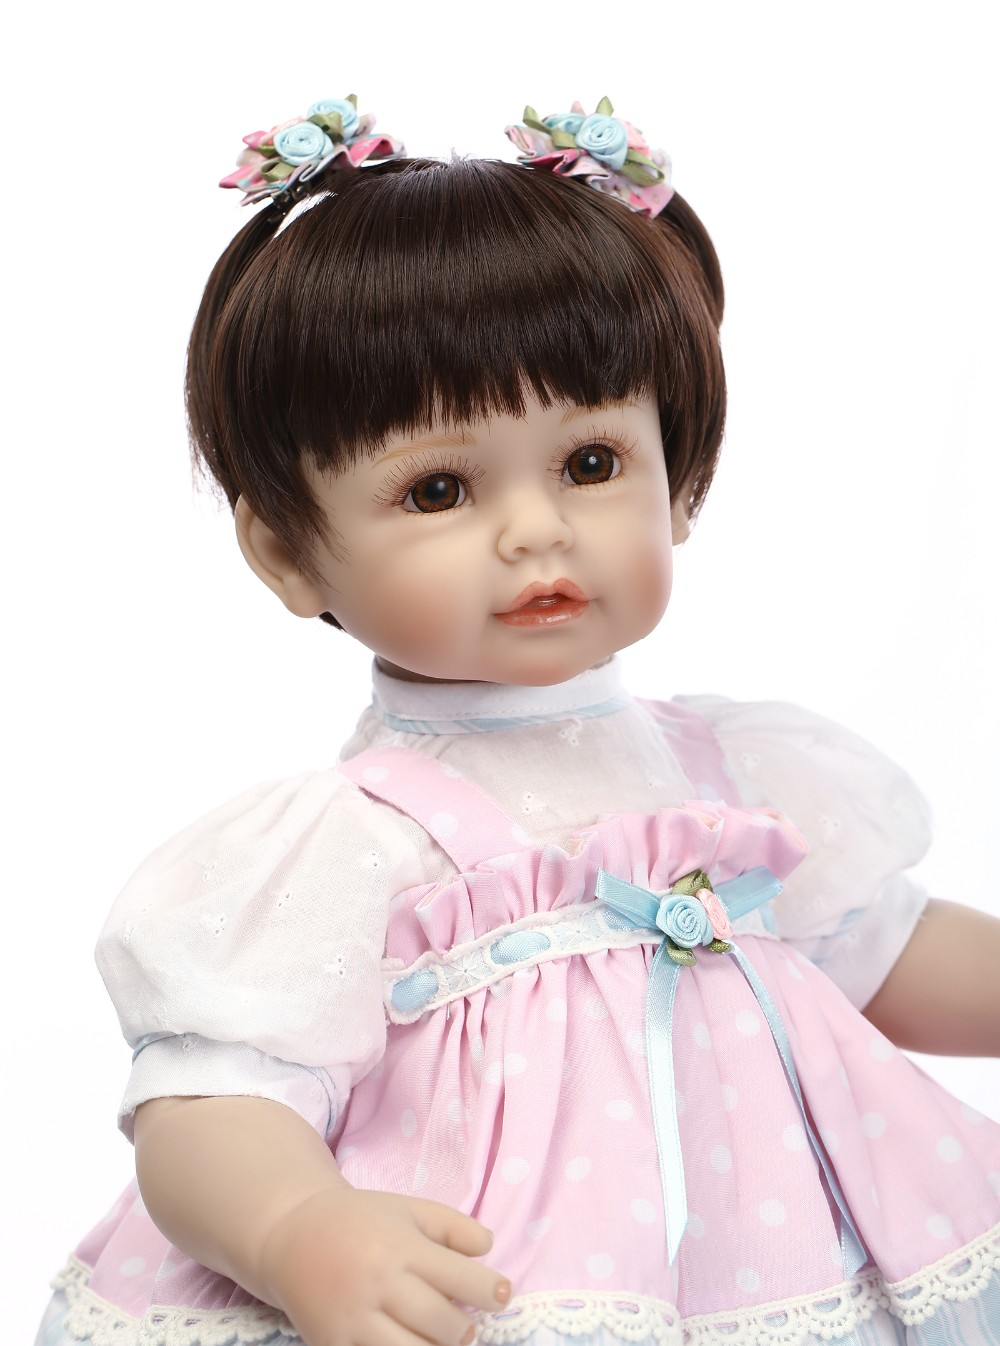 NPKCOLLECTION reborn doll with soft real gentle touch 22inch doll silicone vinyl lifelike newborn baby Christmas Gift baby alive npkcollection reborn doll vinyl silicone soft real gentle touch doll beautiful gift for kis on birthday and christmas